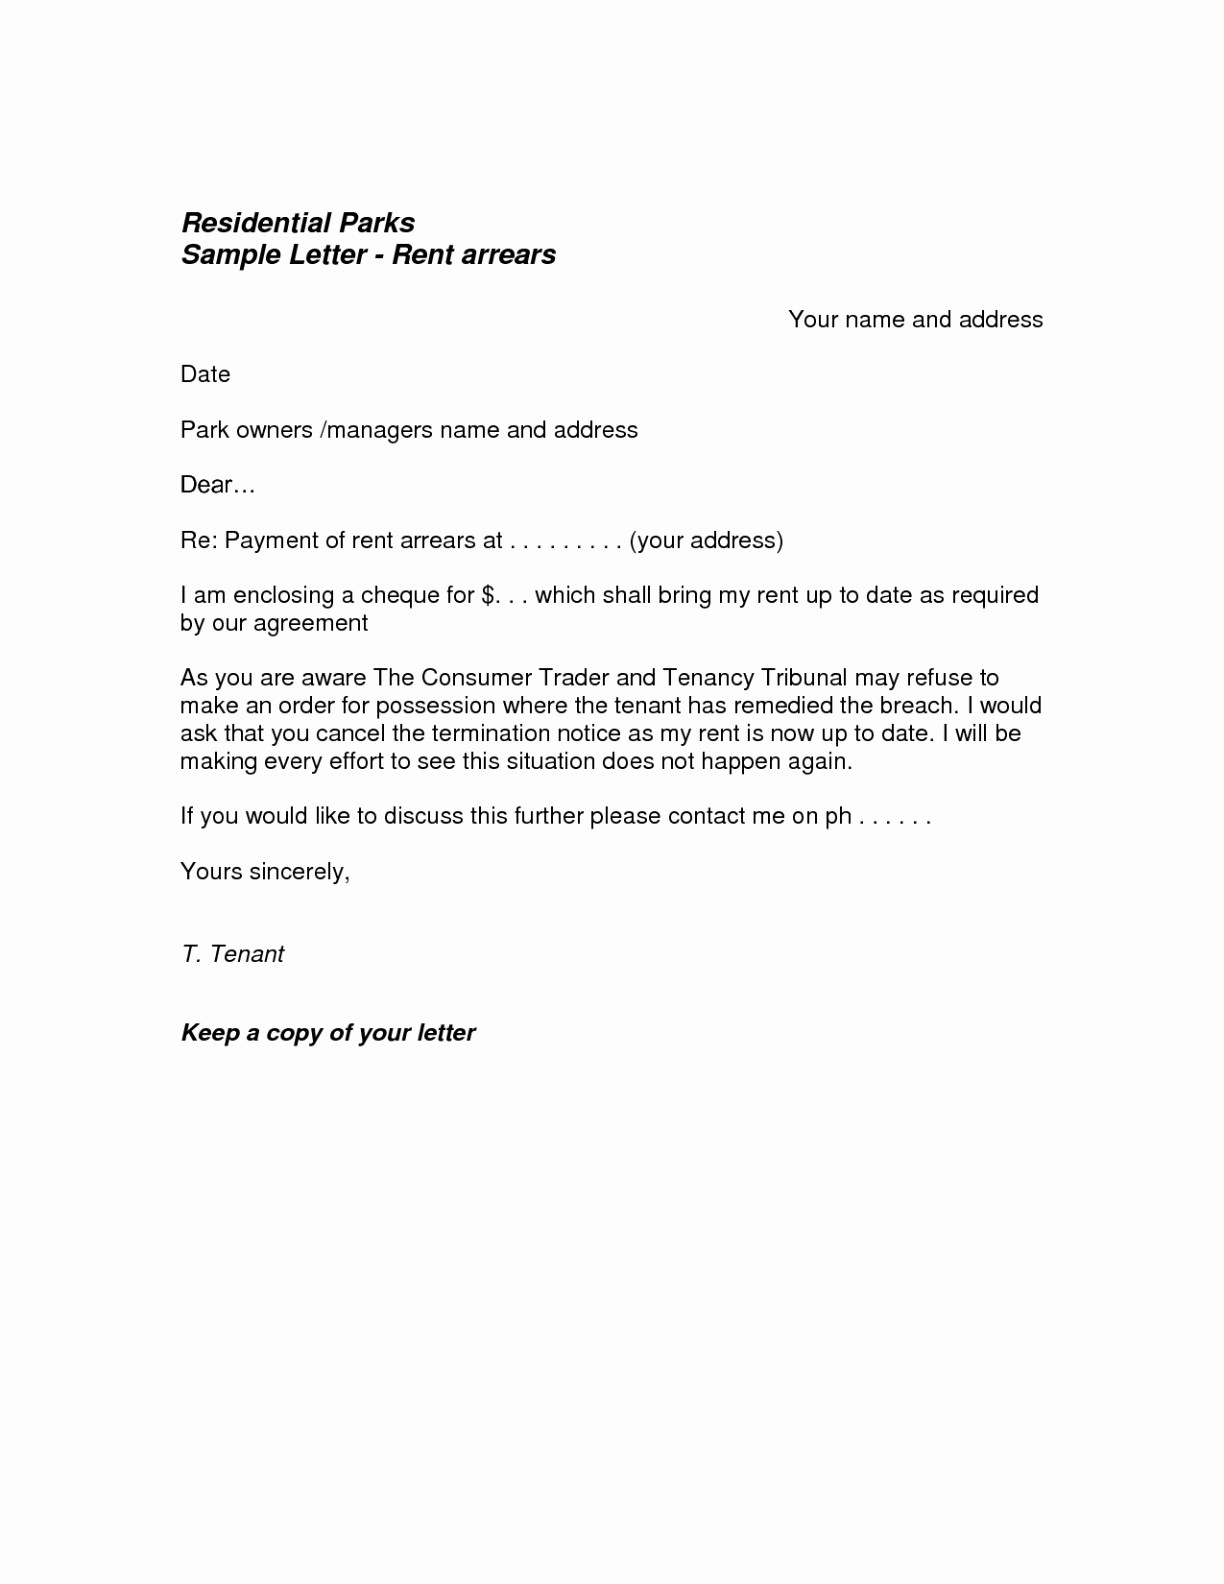 Termination Of Contract Agreement Letter Template - Letter format for Agreement Termination Refrence Contract